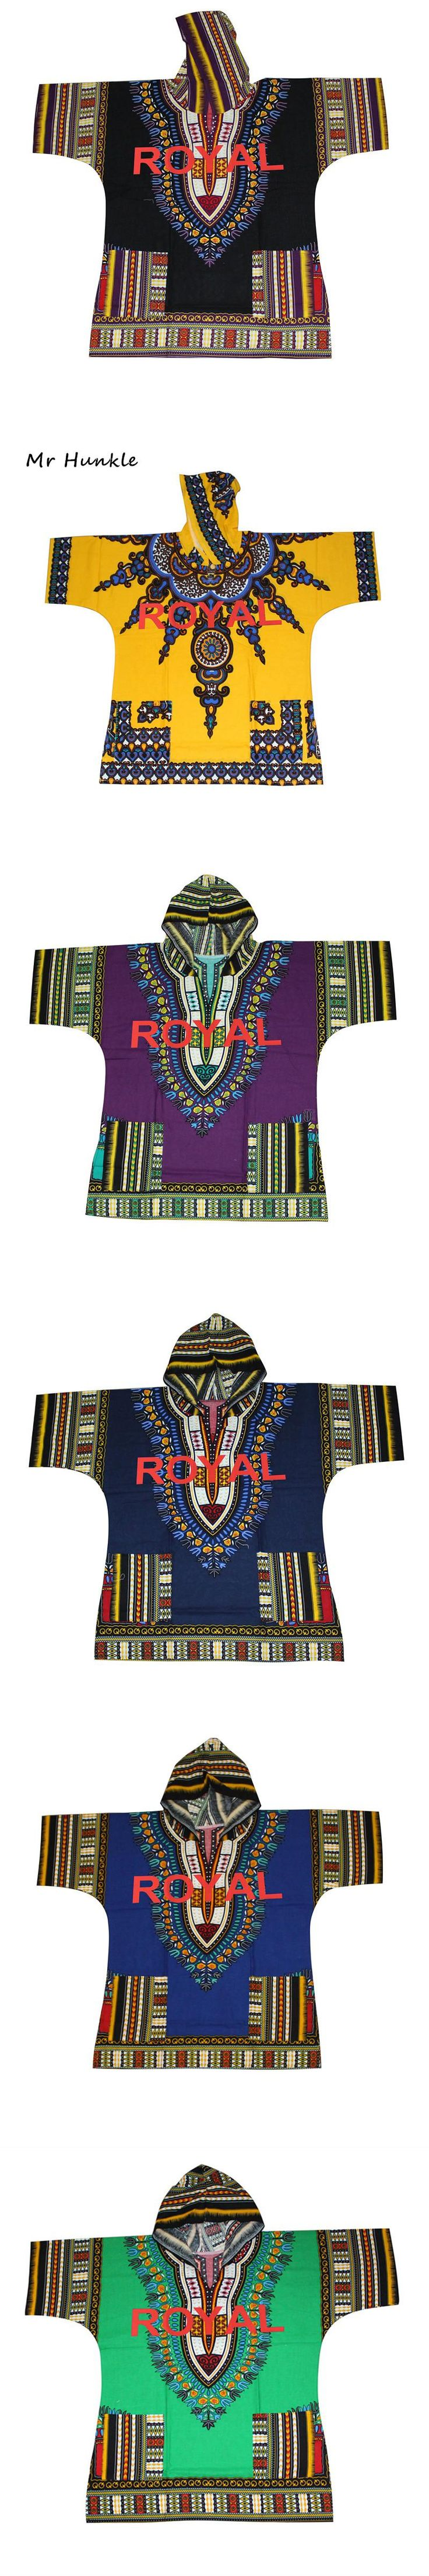 Mr Hunkle New Design Dashiki Hoodies Red Royal Printted African Clothing  African Dashiki For Women Men Plus Size XXL,XXXL